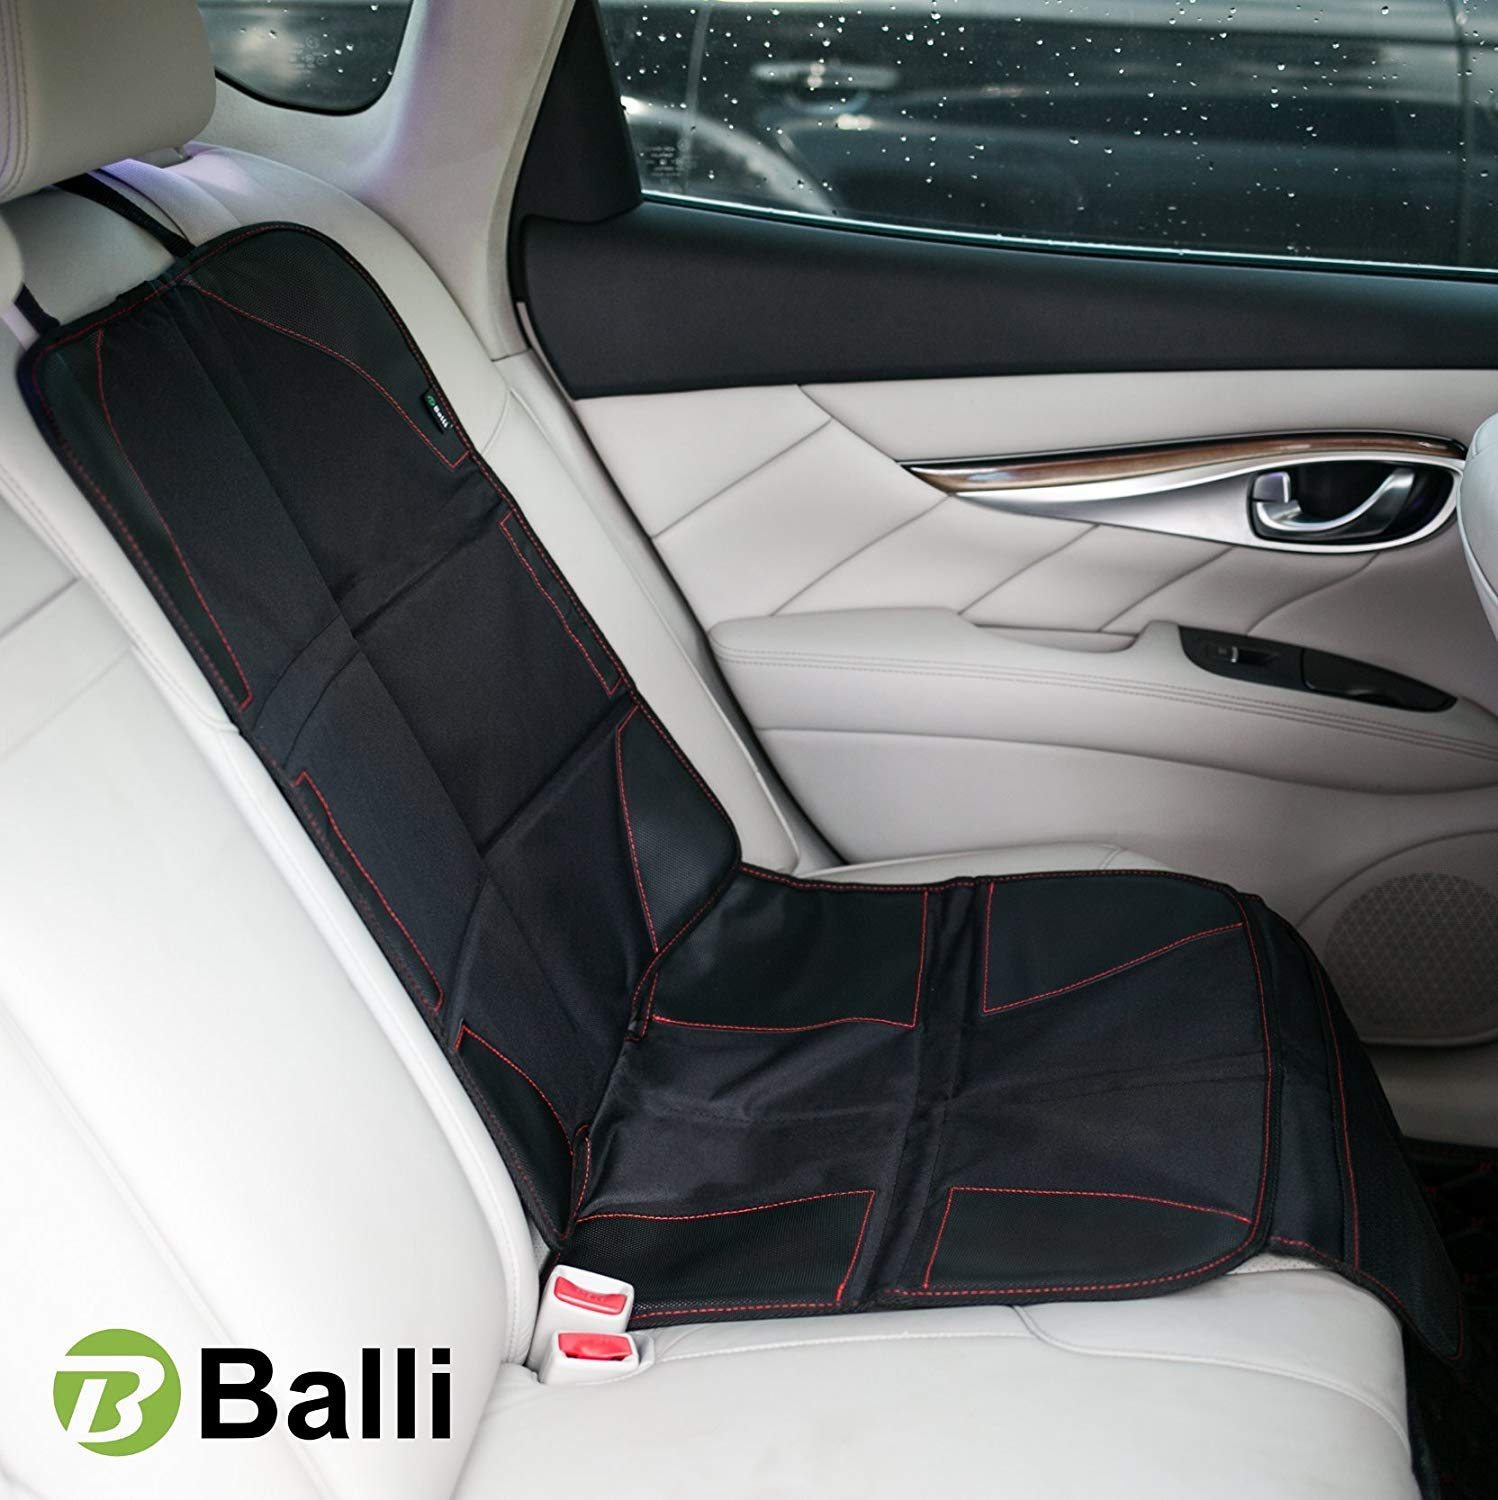 [Balli] [Baby Car Seat Protector with Thickest Padding - Premium Carseat Seat Protectors - Carseat Auto Cover - Seat Protector Under Car Seat - Car Seat Guardian - Leather Car Seat Mat - Booster Seat Protector] (並行輸入品) One Size One Color B07GX8GGDL